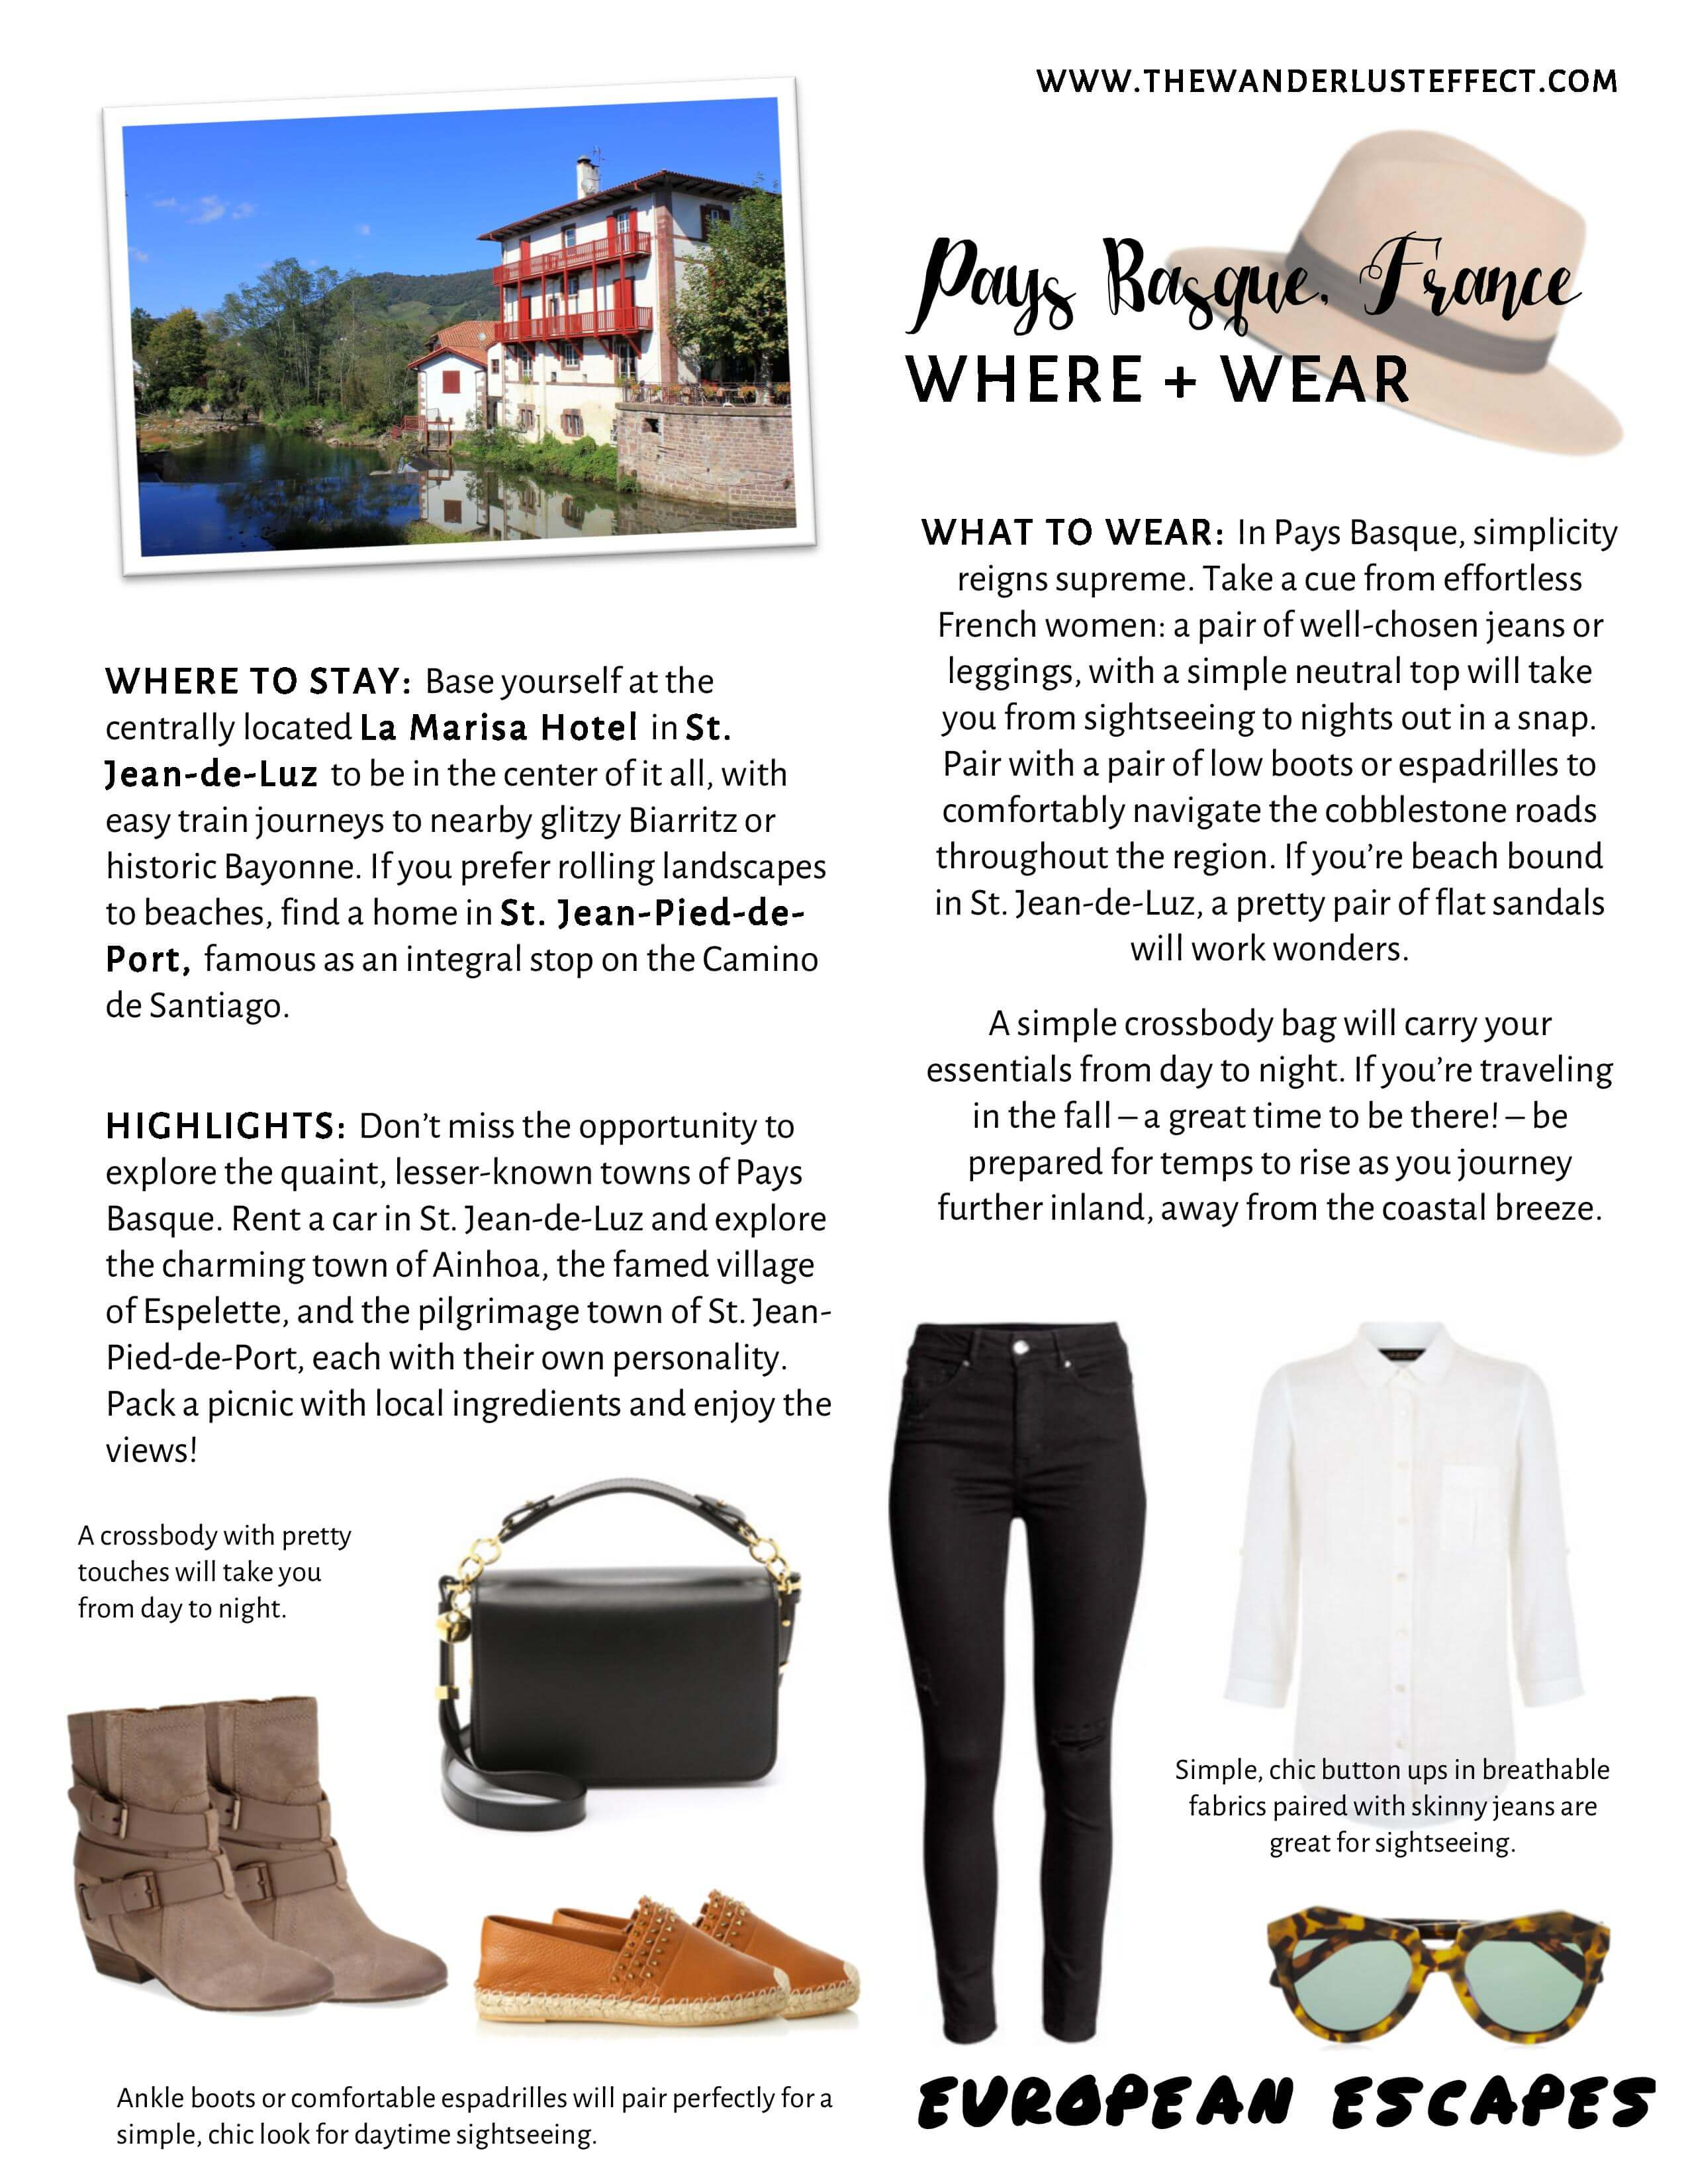 Pays Basque Travel Style - The Wanderlust Effect